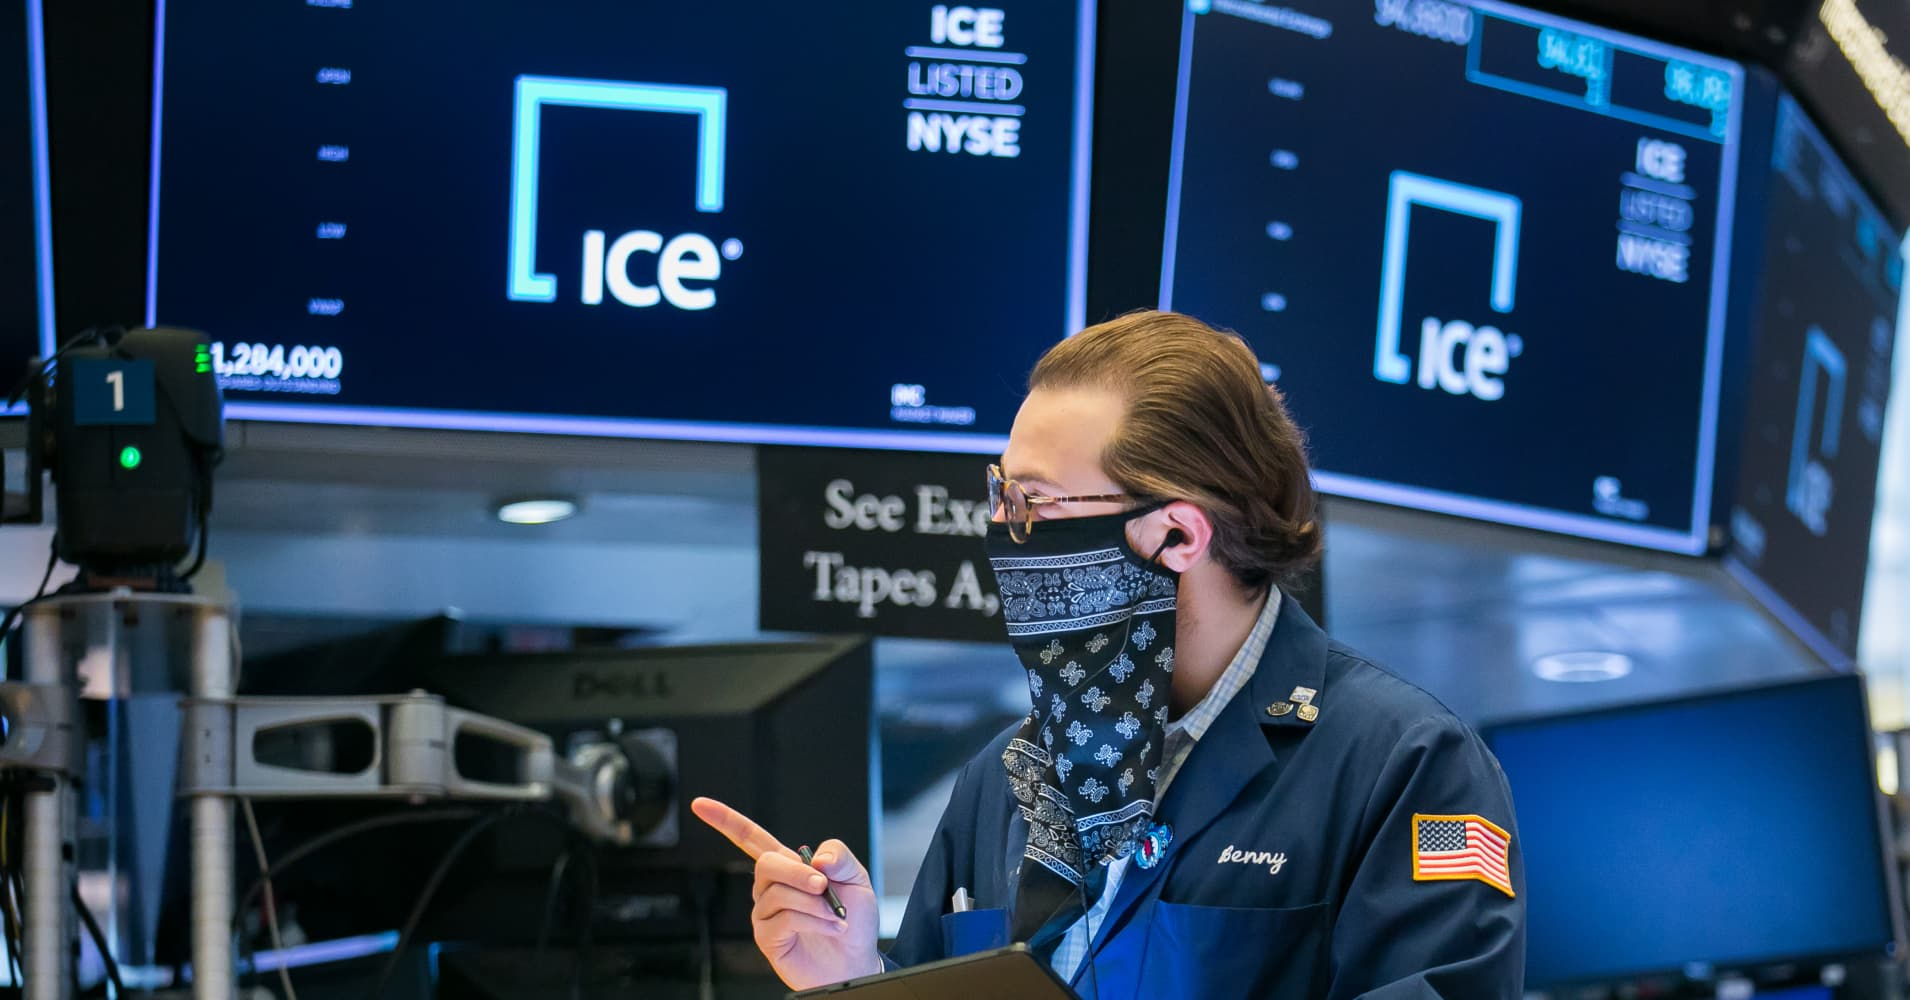 a man standing on a stage: Contracts tied to the major U.S. stock indexes slipped early Friday morning as Wall Street appeared headed to close out the record-setting week on a muted note. CNBC's Rahel Solomon reports.